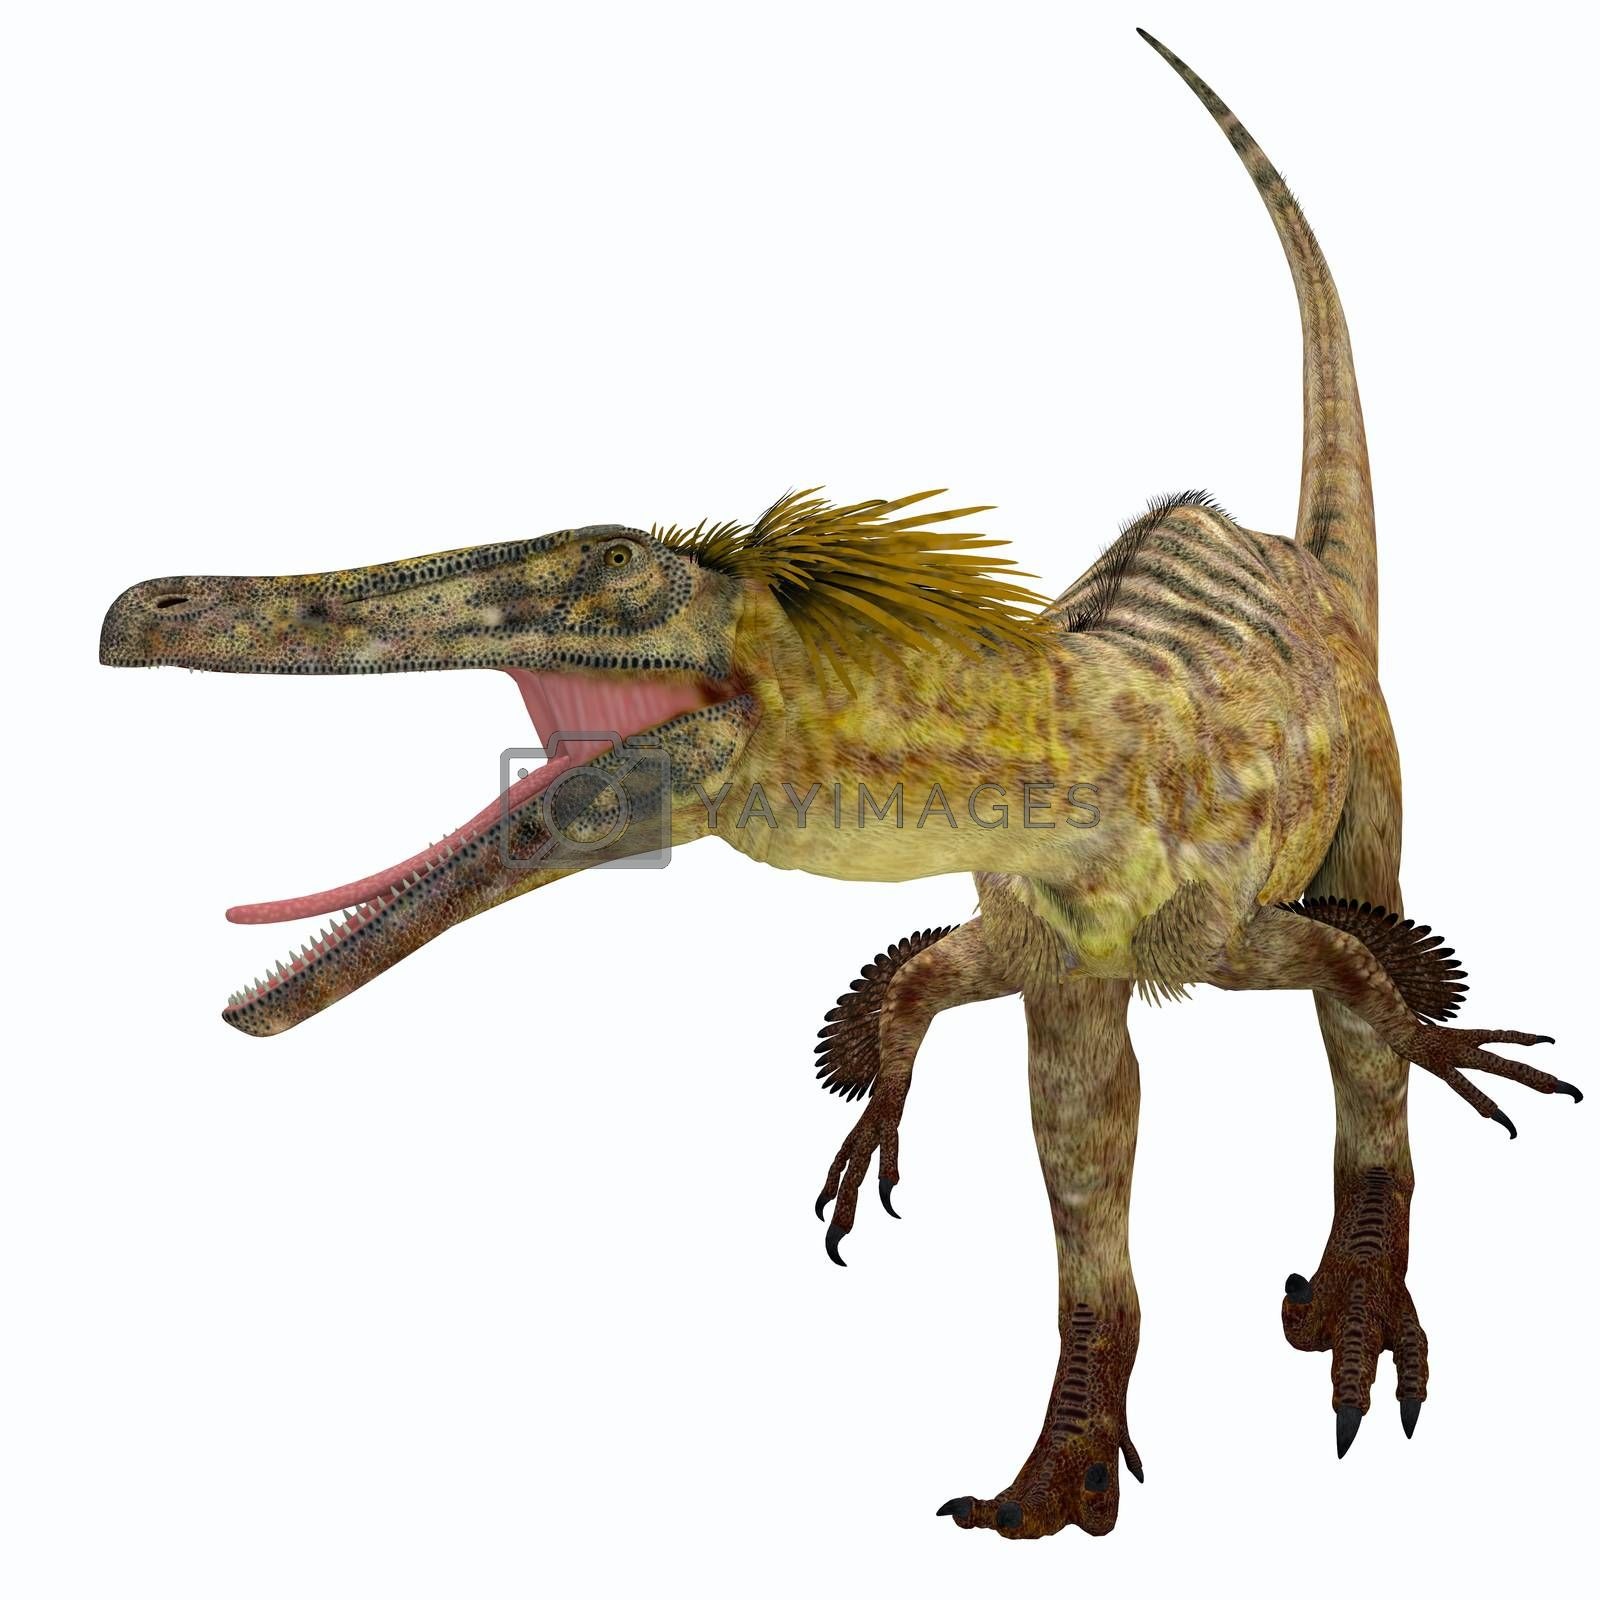 Austroraptor was a carnivorous theropod dinosaur that lived in Argentina in the Cretaceous Period.